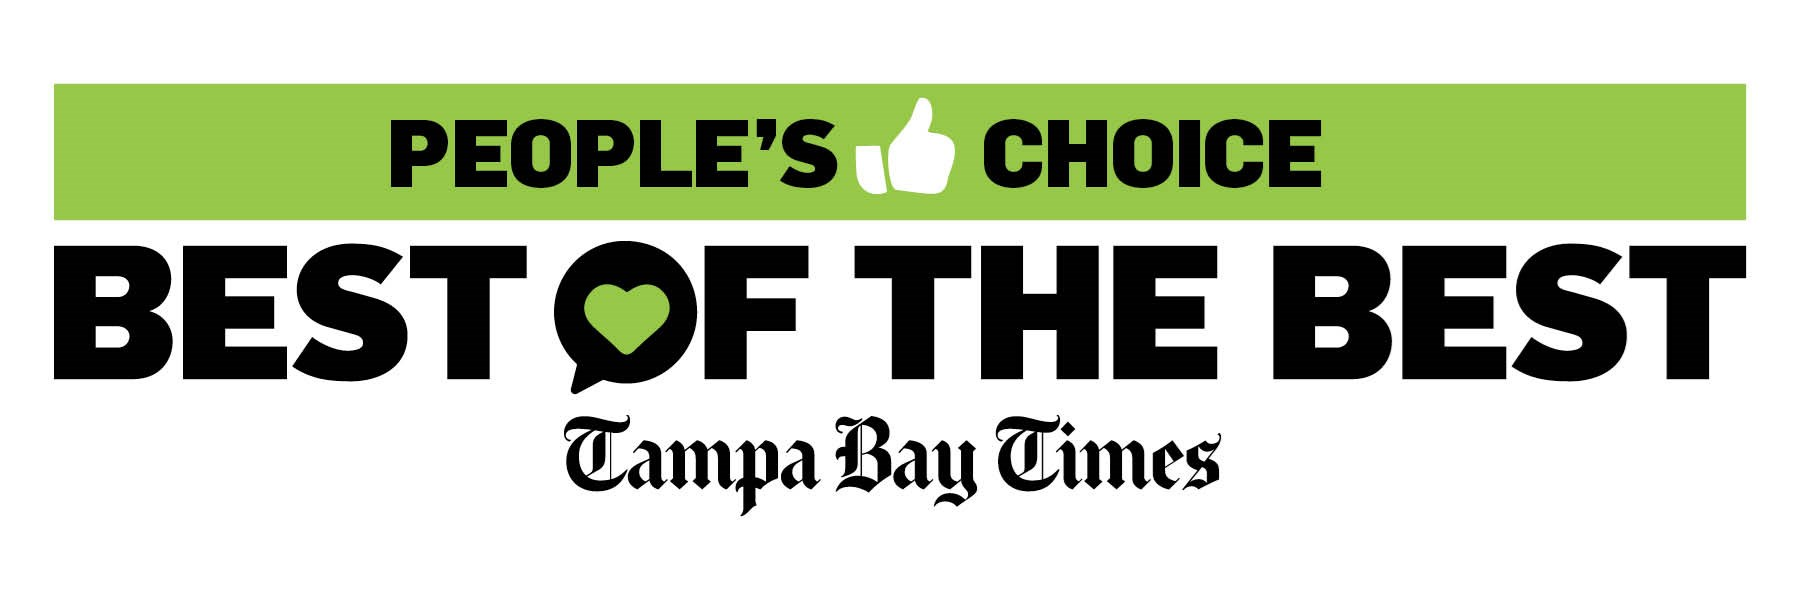 Best Of The Bay 2019 Tampa Bay, Florida news | Tampa Bay Times/St. Pete Times | Best of